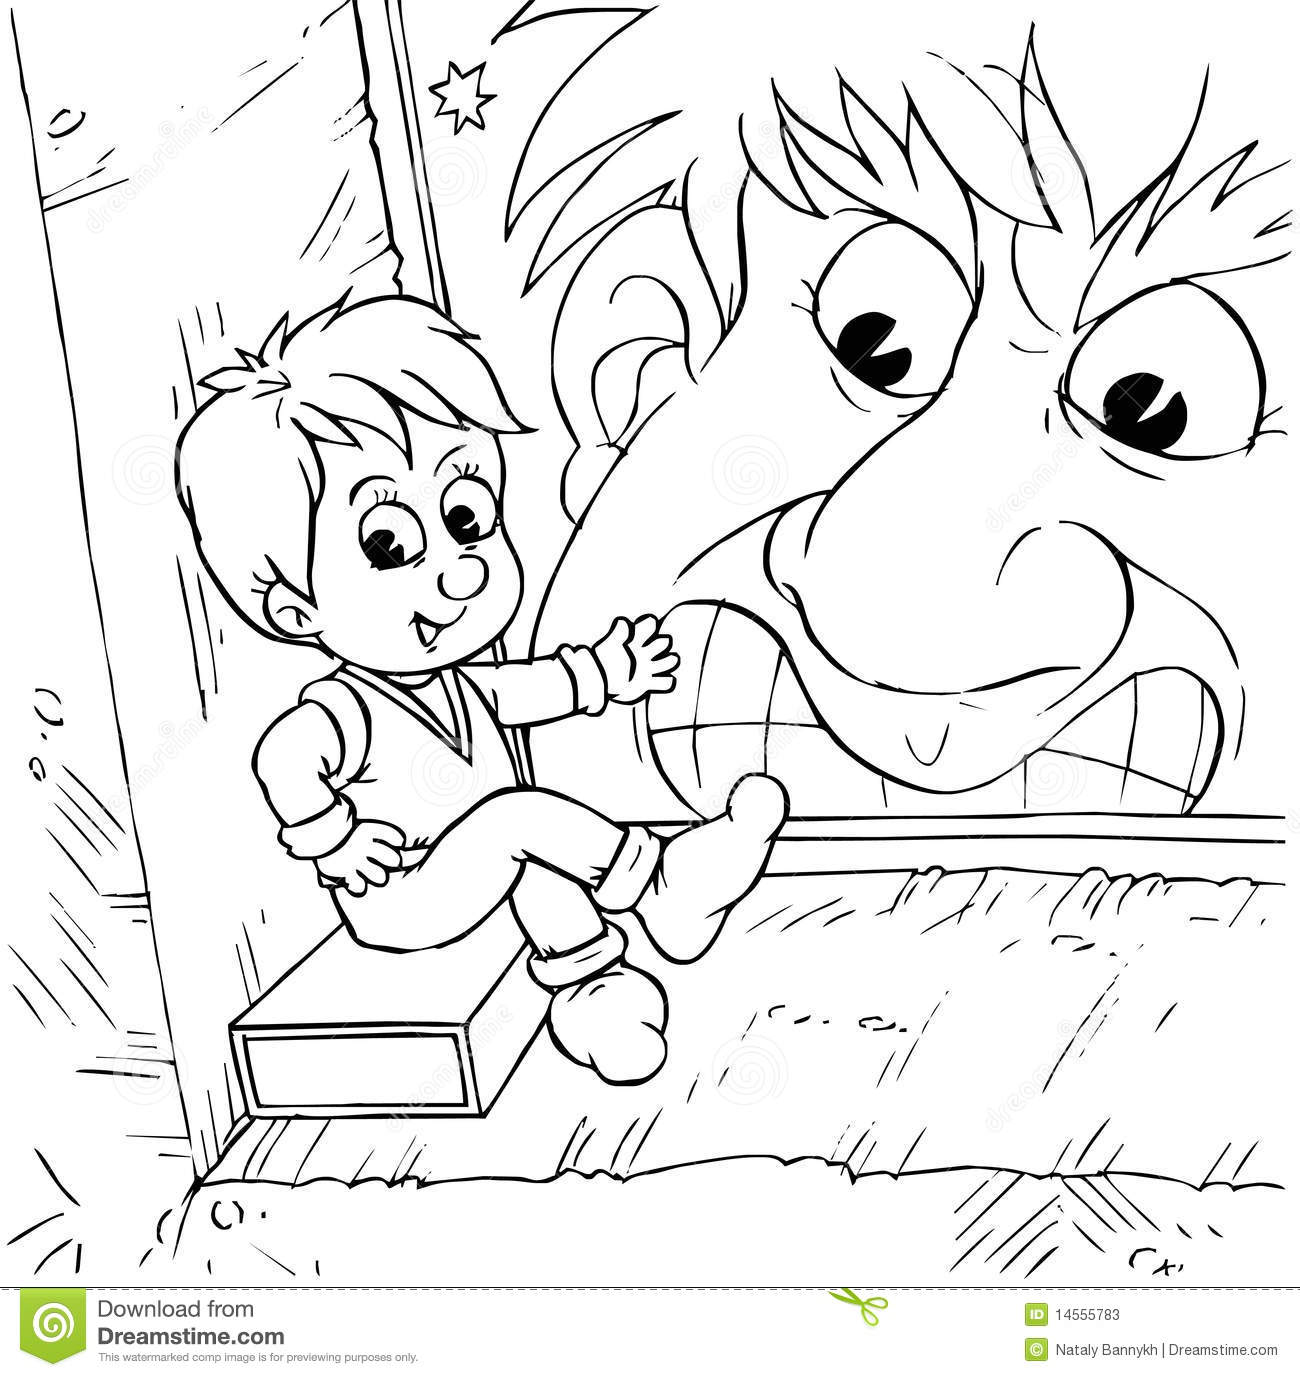 tom thumb coloring pages - photo#11